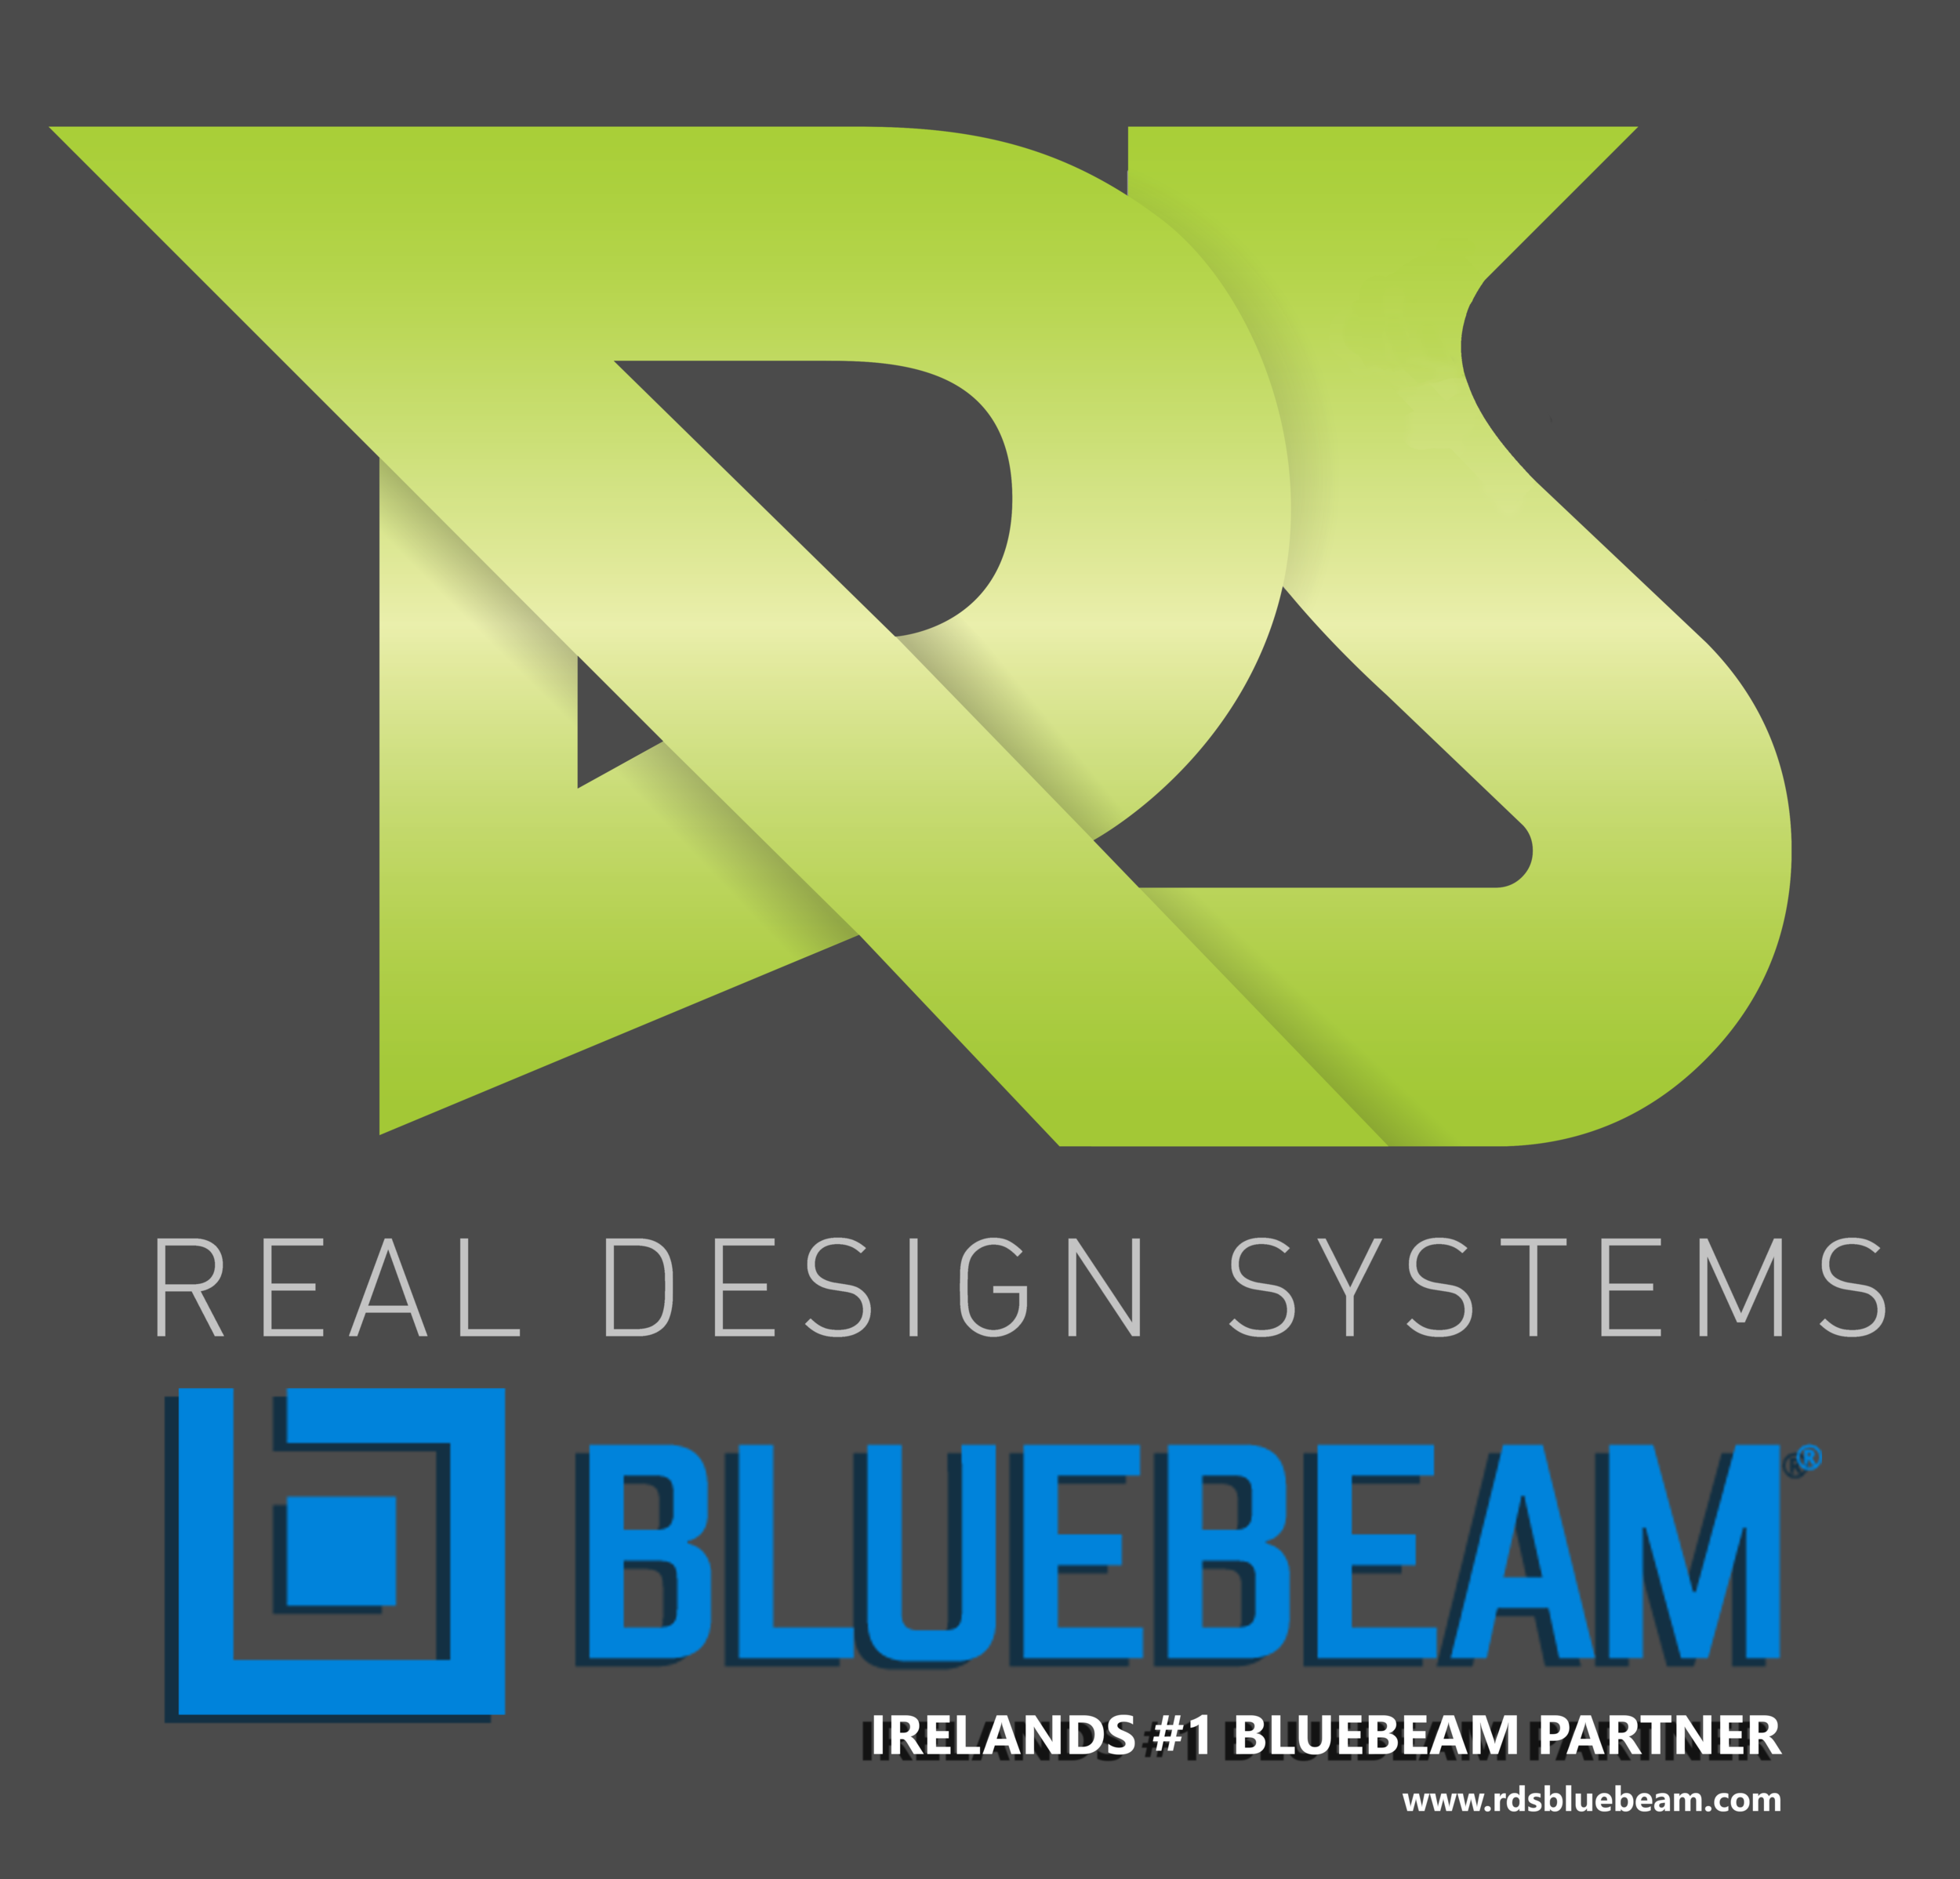 Bluebeam - RDS Bluebeam is the #1 Bluebeam partner for Ireland.We offer premier digital construction solutions around document management. We are not your average software vendor. We believe in mutual collaboration, working with you in order to achieve success in the world of digital construction, VDC/BIM. We focus purely on the inbetweens of virtual design management. We are here to re-imagine, re-focus and recoordinate a collaborative digital construction industry. Being the main partner for Bluebeam in over 20 countries you can always rest assure you will get the best service, advice and technical support from the industry's best experts? We give you our best people, so that your team grows and develops in the same time the critical projects are being delivered.We provide expert sales, training, support and mentorship on Bluebeam Revu.RDS Bluebeam – Setting the standard for digital construction and project collaboration.